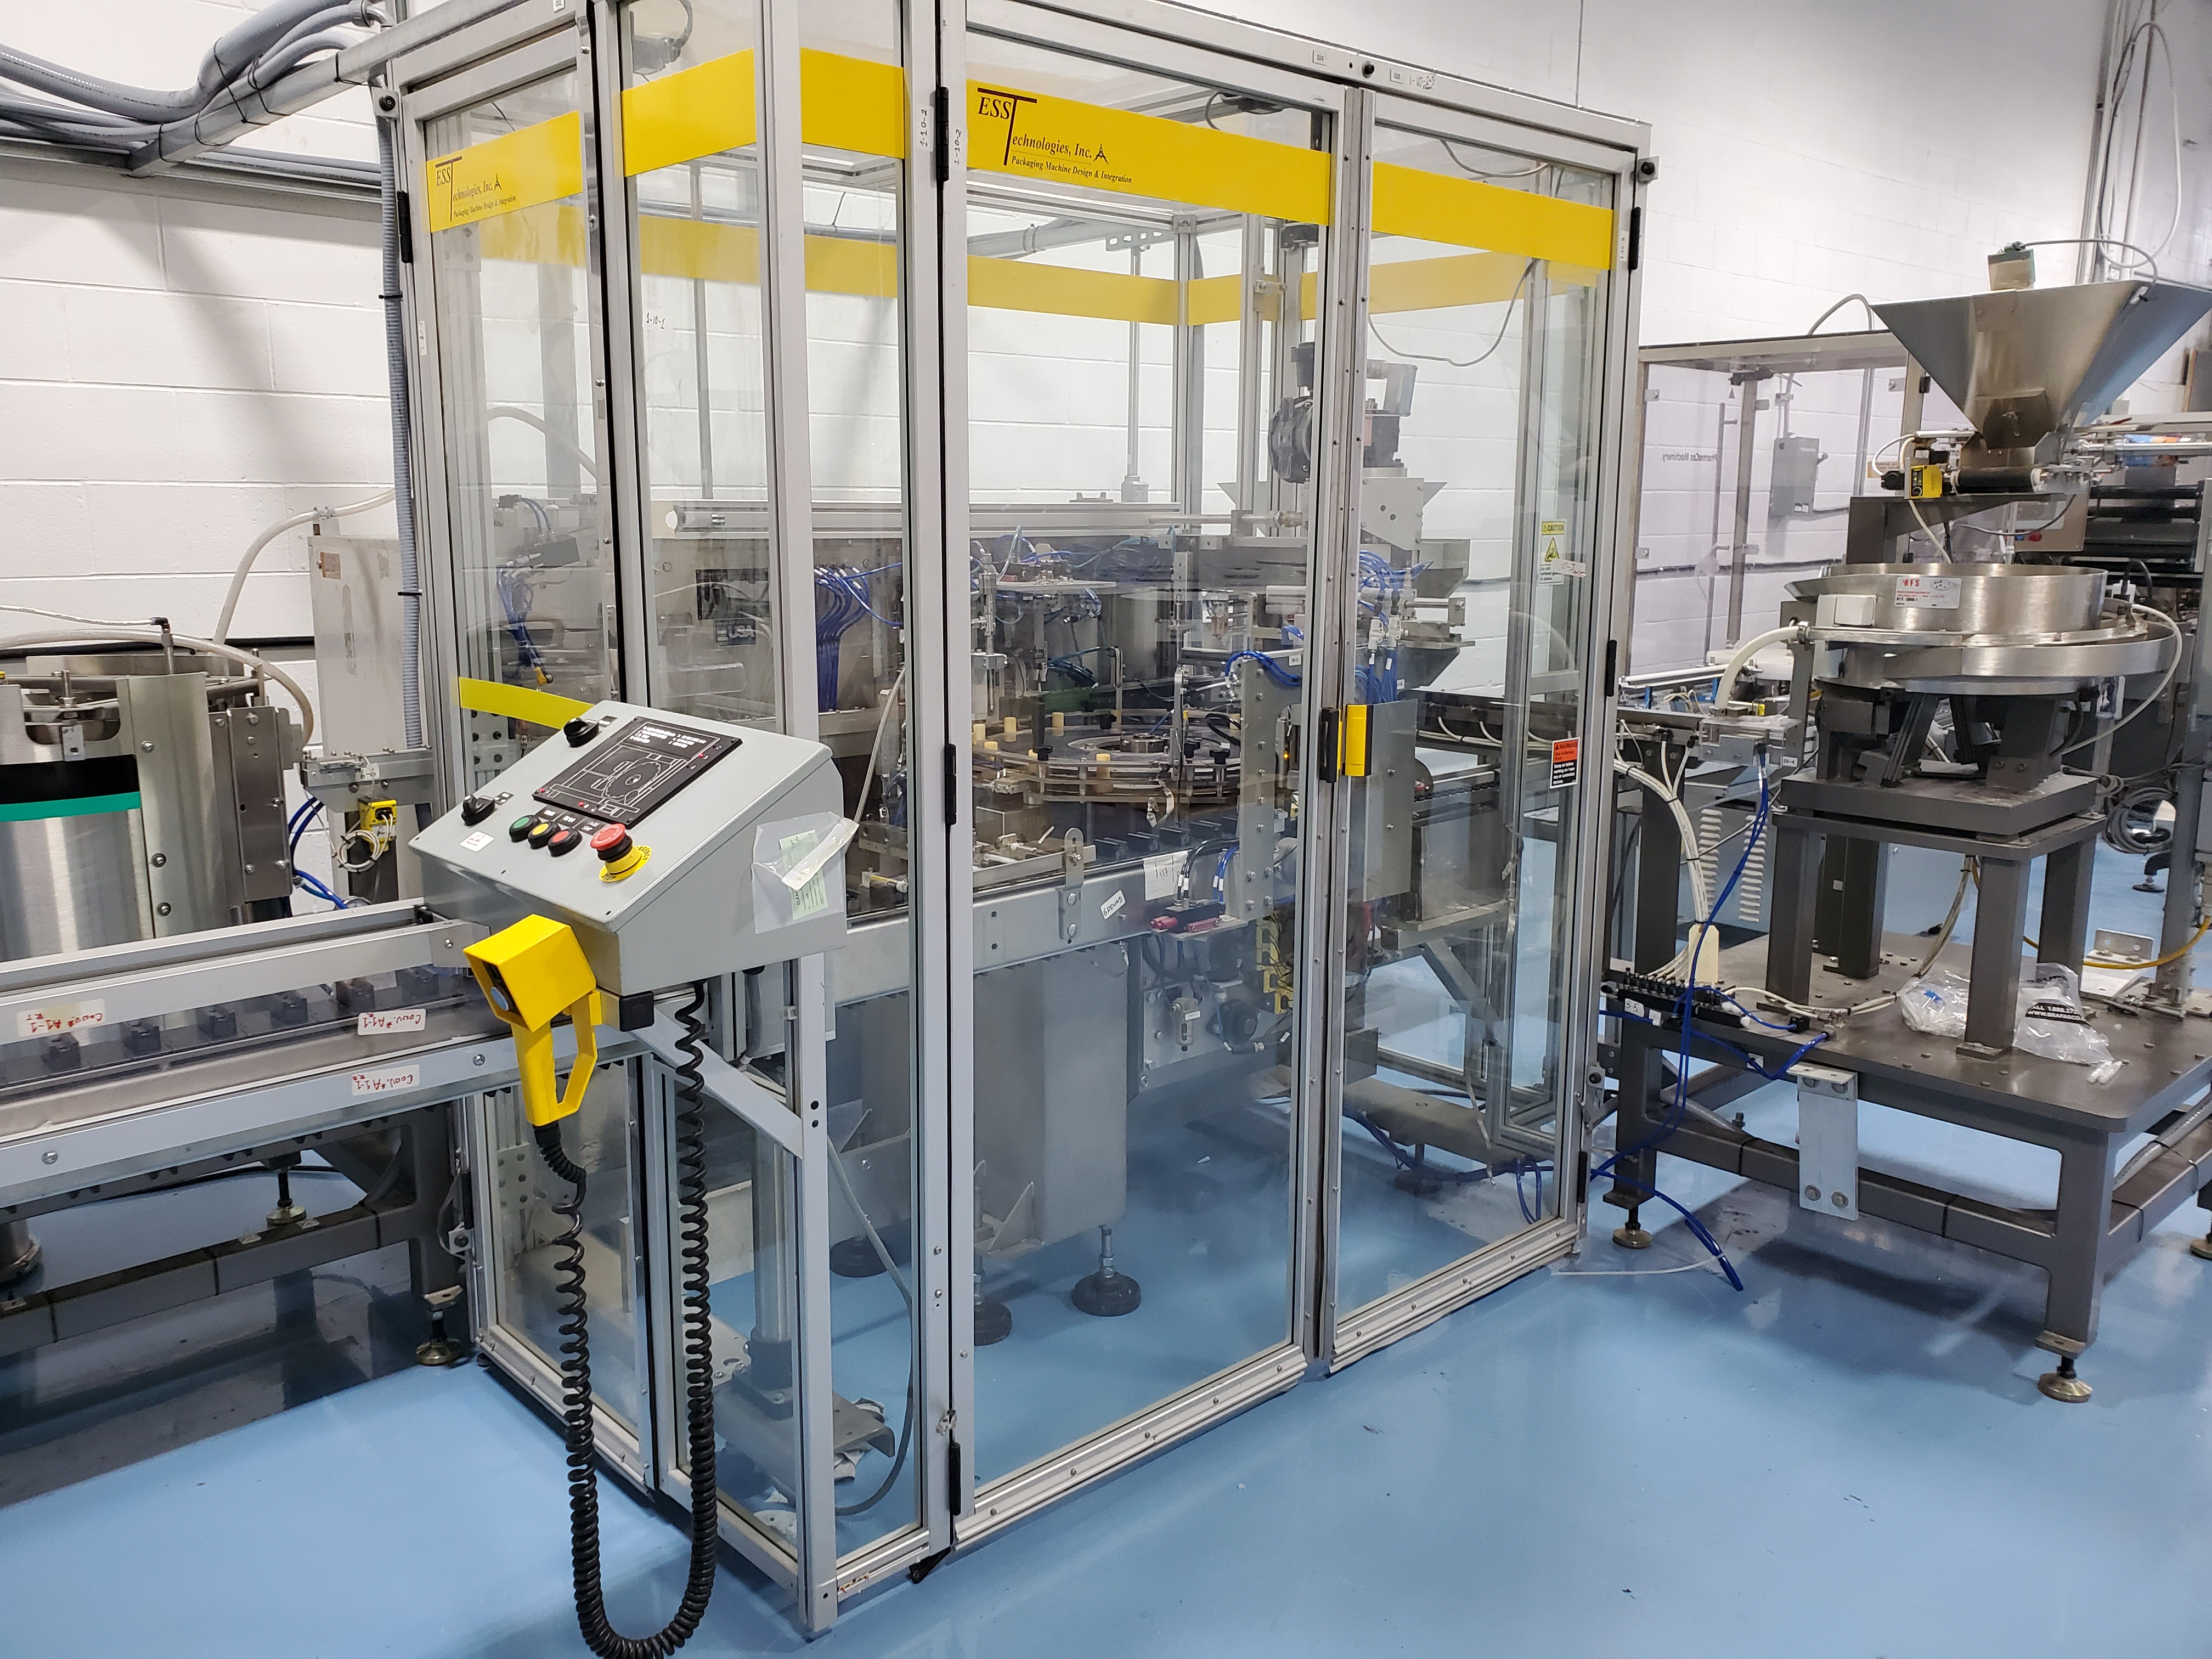 ESS TECHNOLOGIES MB60XP EXPLOSION PROOF MONOBLOCK FILLING & SEALING SYSTEM - Image 5 of 11